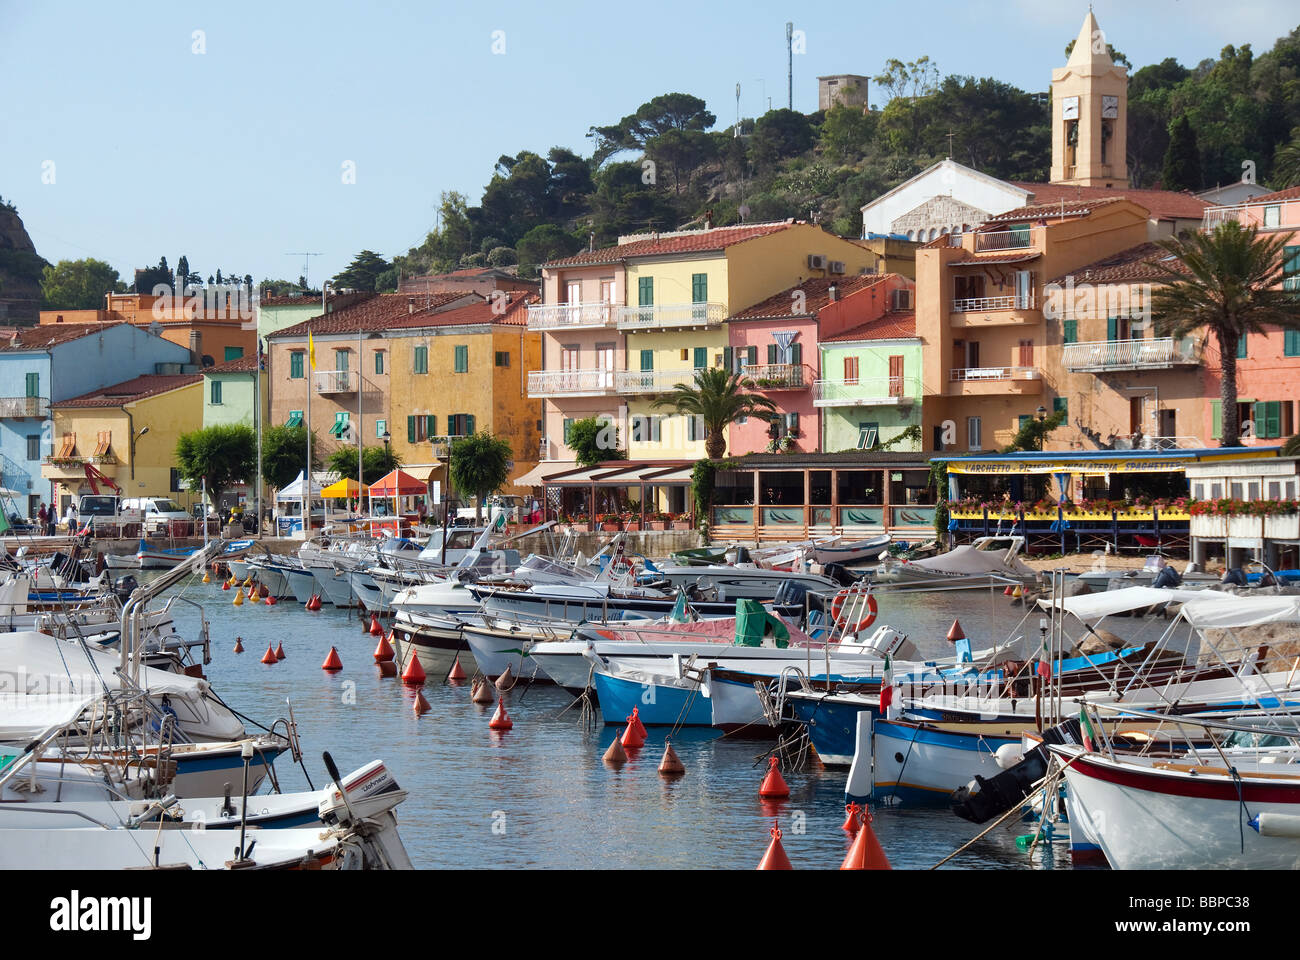 Week-end on Isola del Giglio - Vogue.it